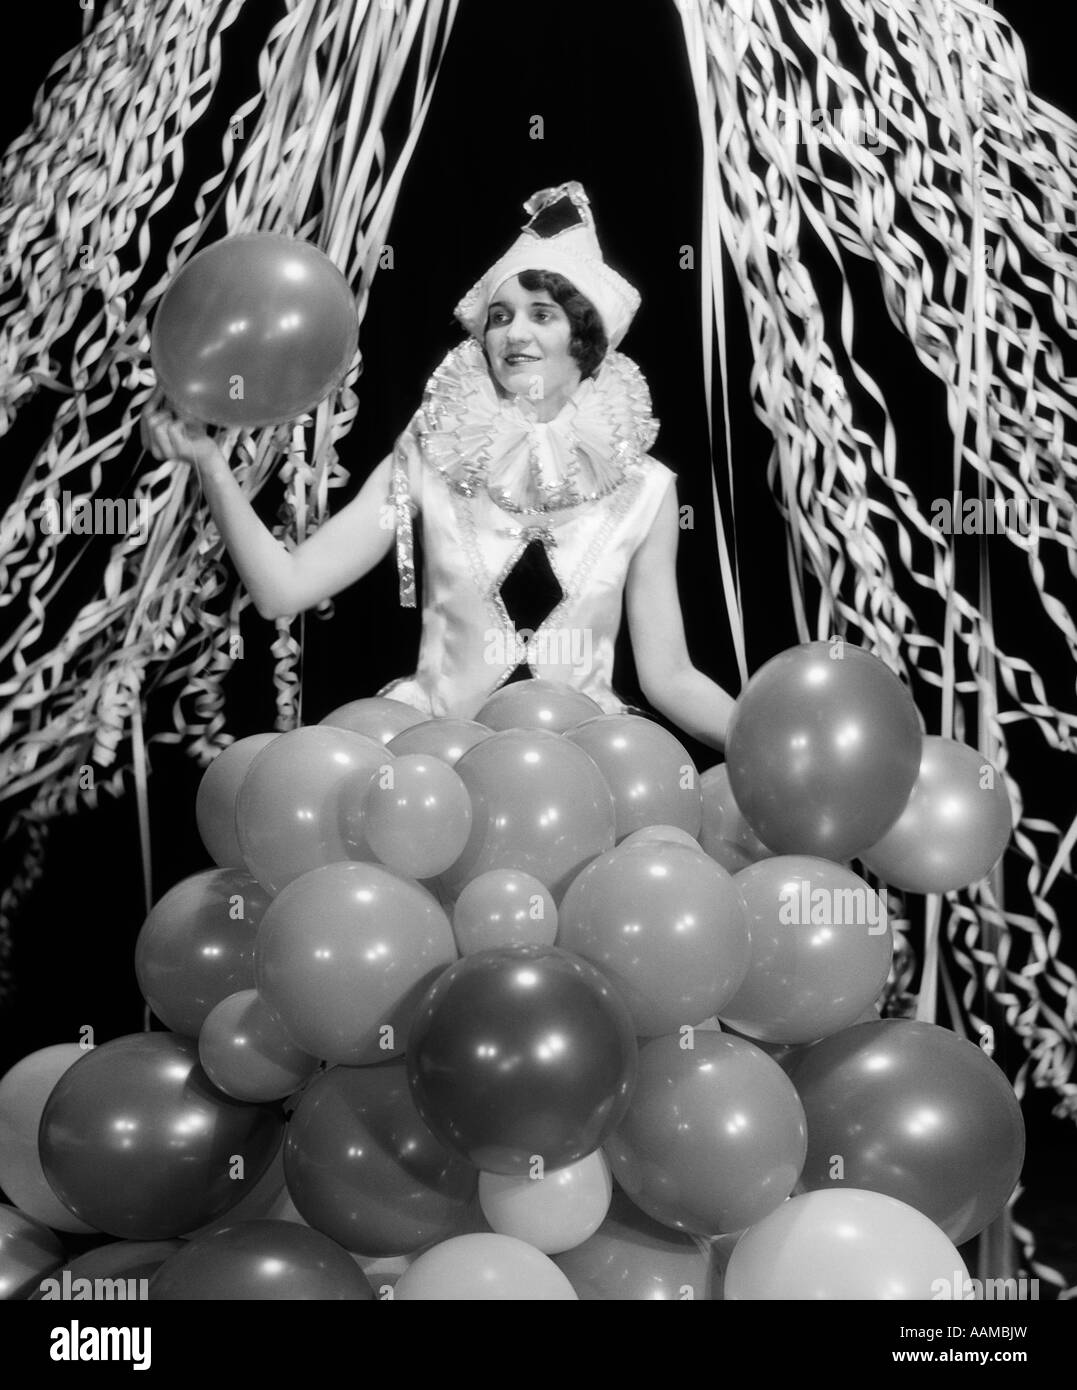 1920s 1930s SMILING YOUNG WOMAN Pierrot CLOWN AMID PARTY BALLOONS AND PAPER STREAMERS - Stock Image